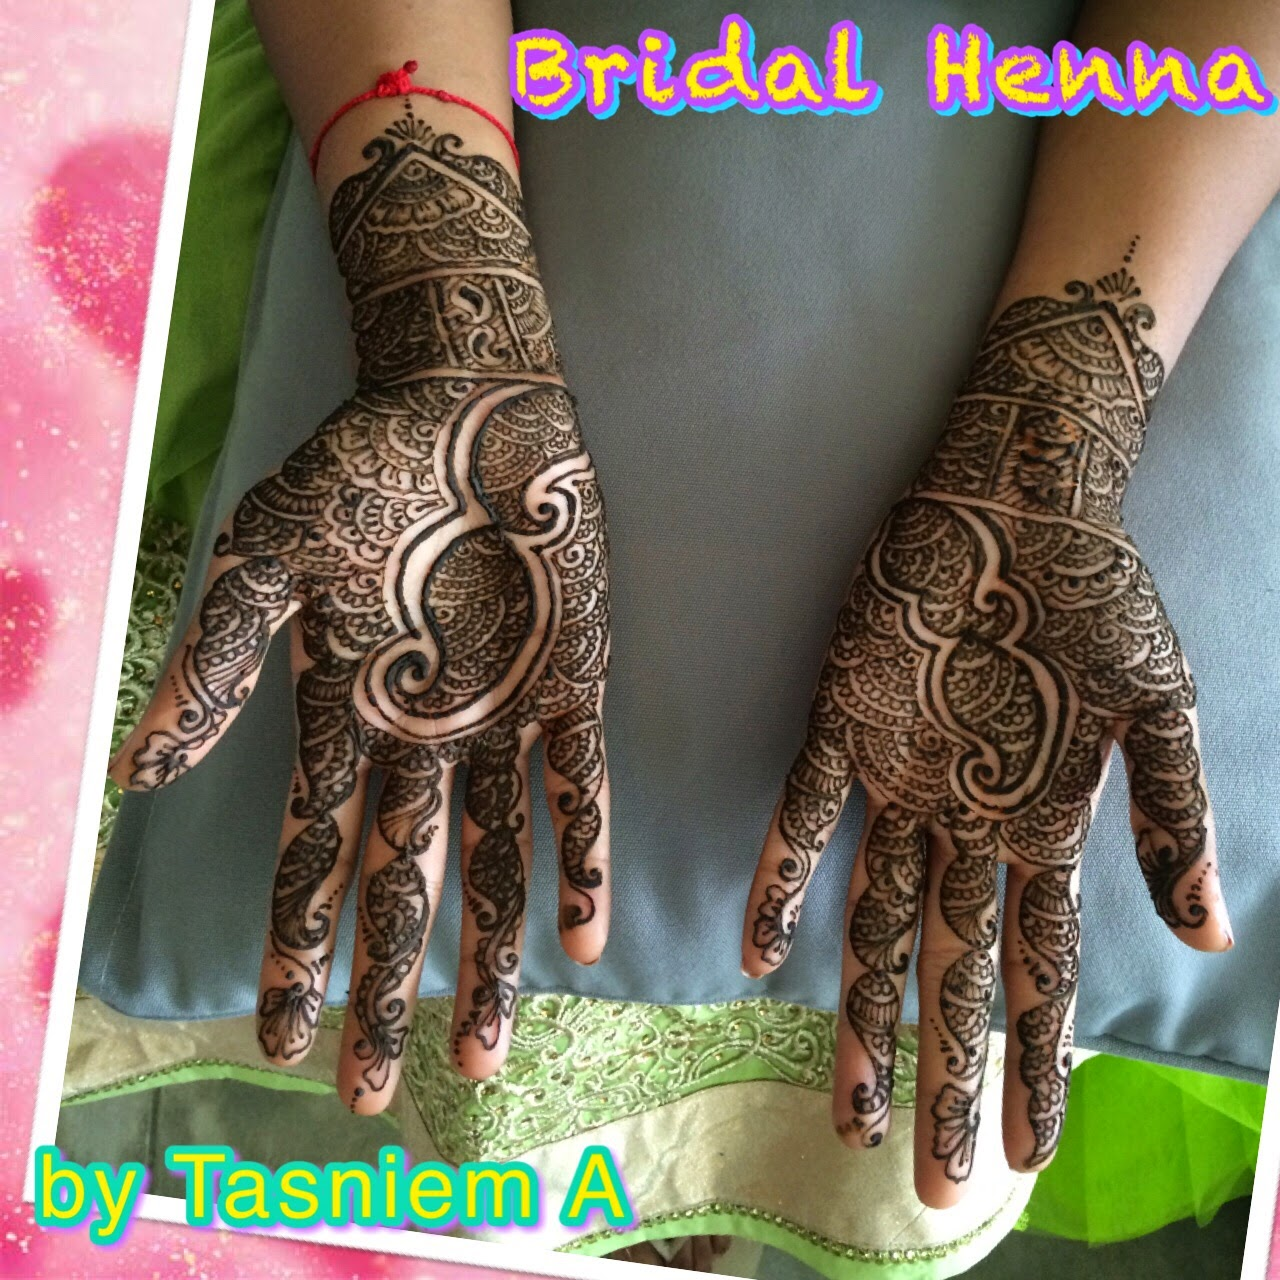 Henna Bali: Henna Bali: HENNA FOR INDIAN WEDDING IN BALI